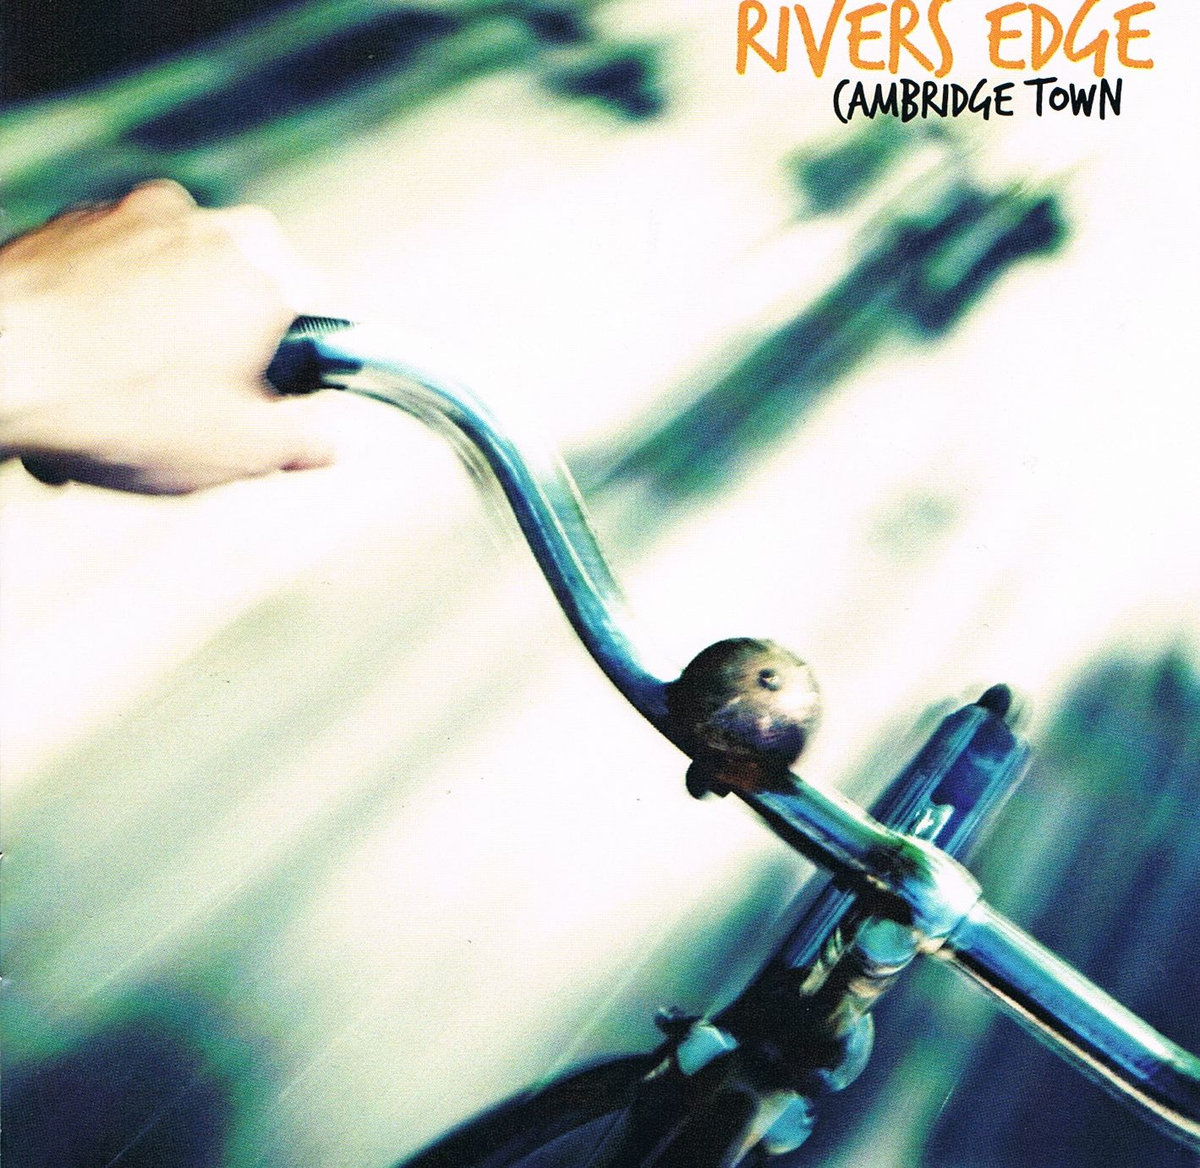 RiversEdge_AlbumCover_CambridgePoint.jpg